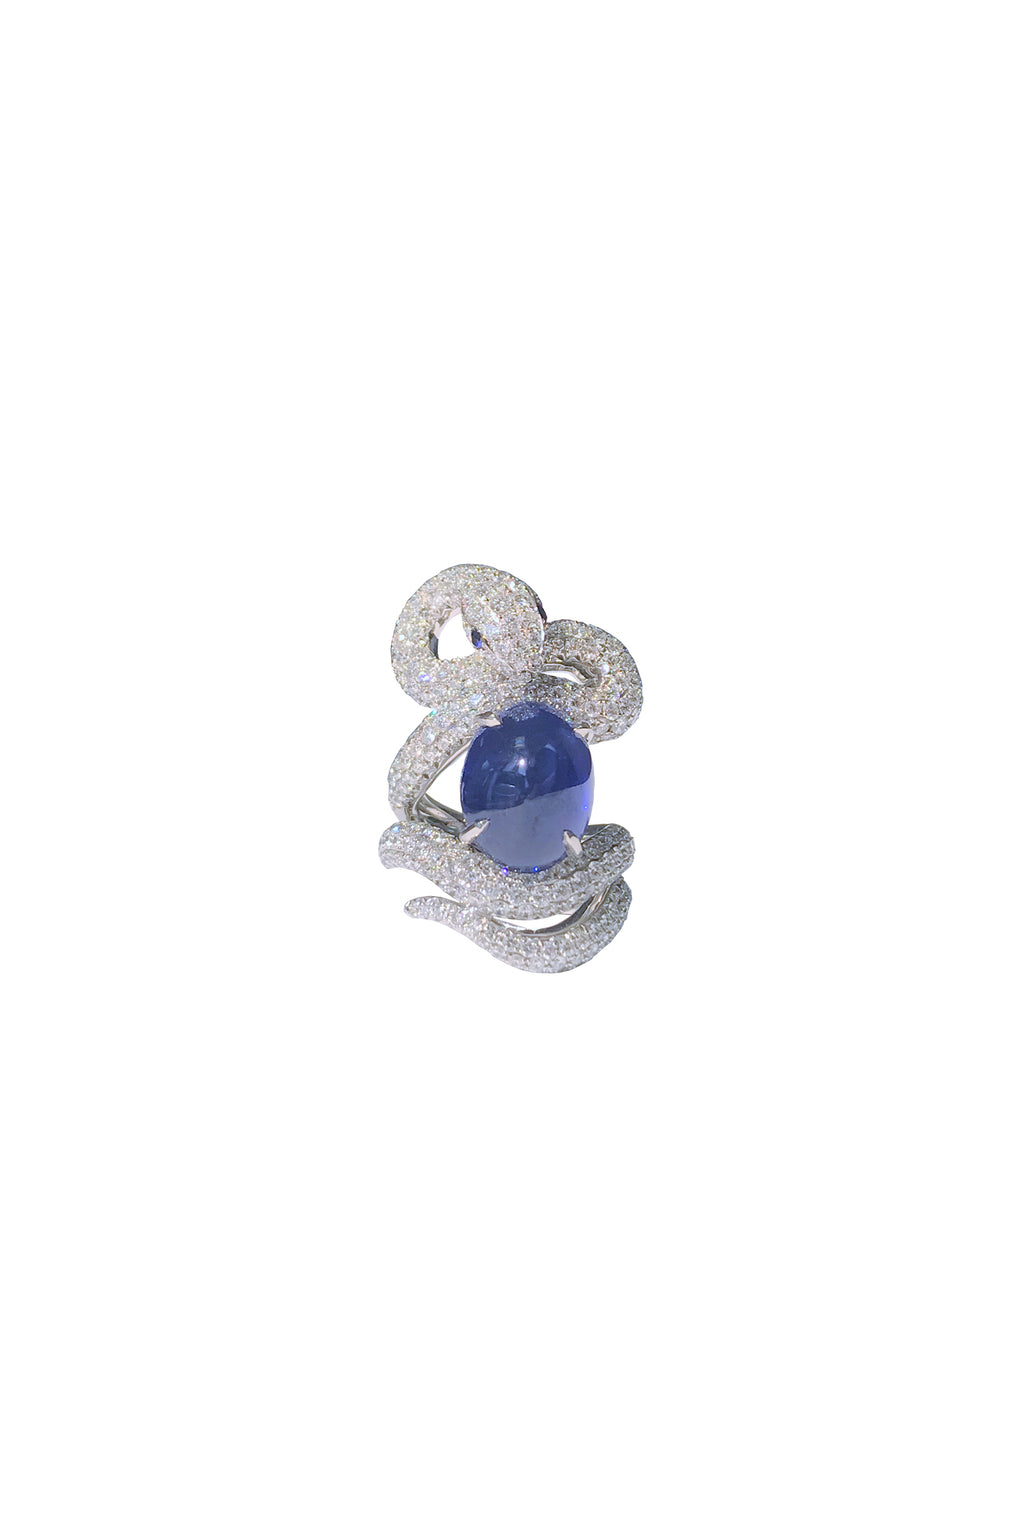 White Diamond with Big Cabochon Sapphire Snake Ring